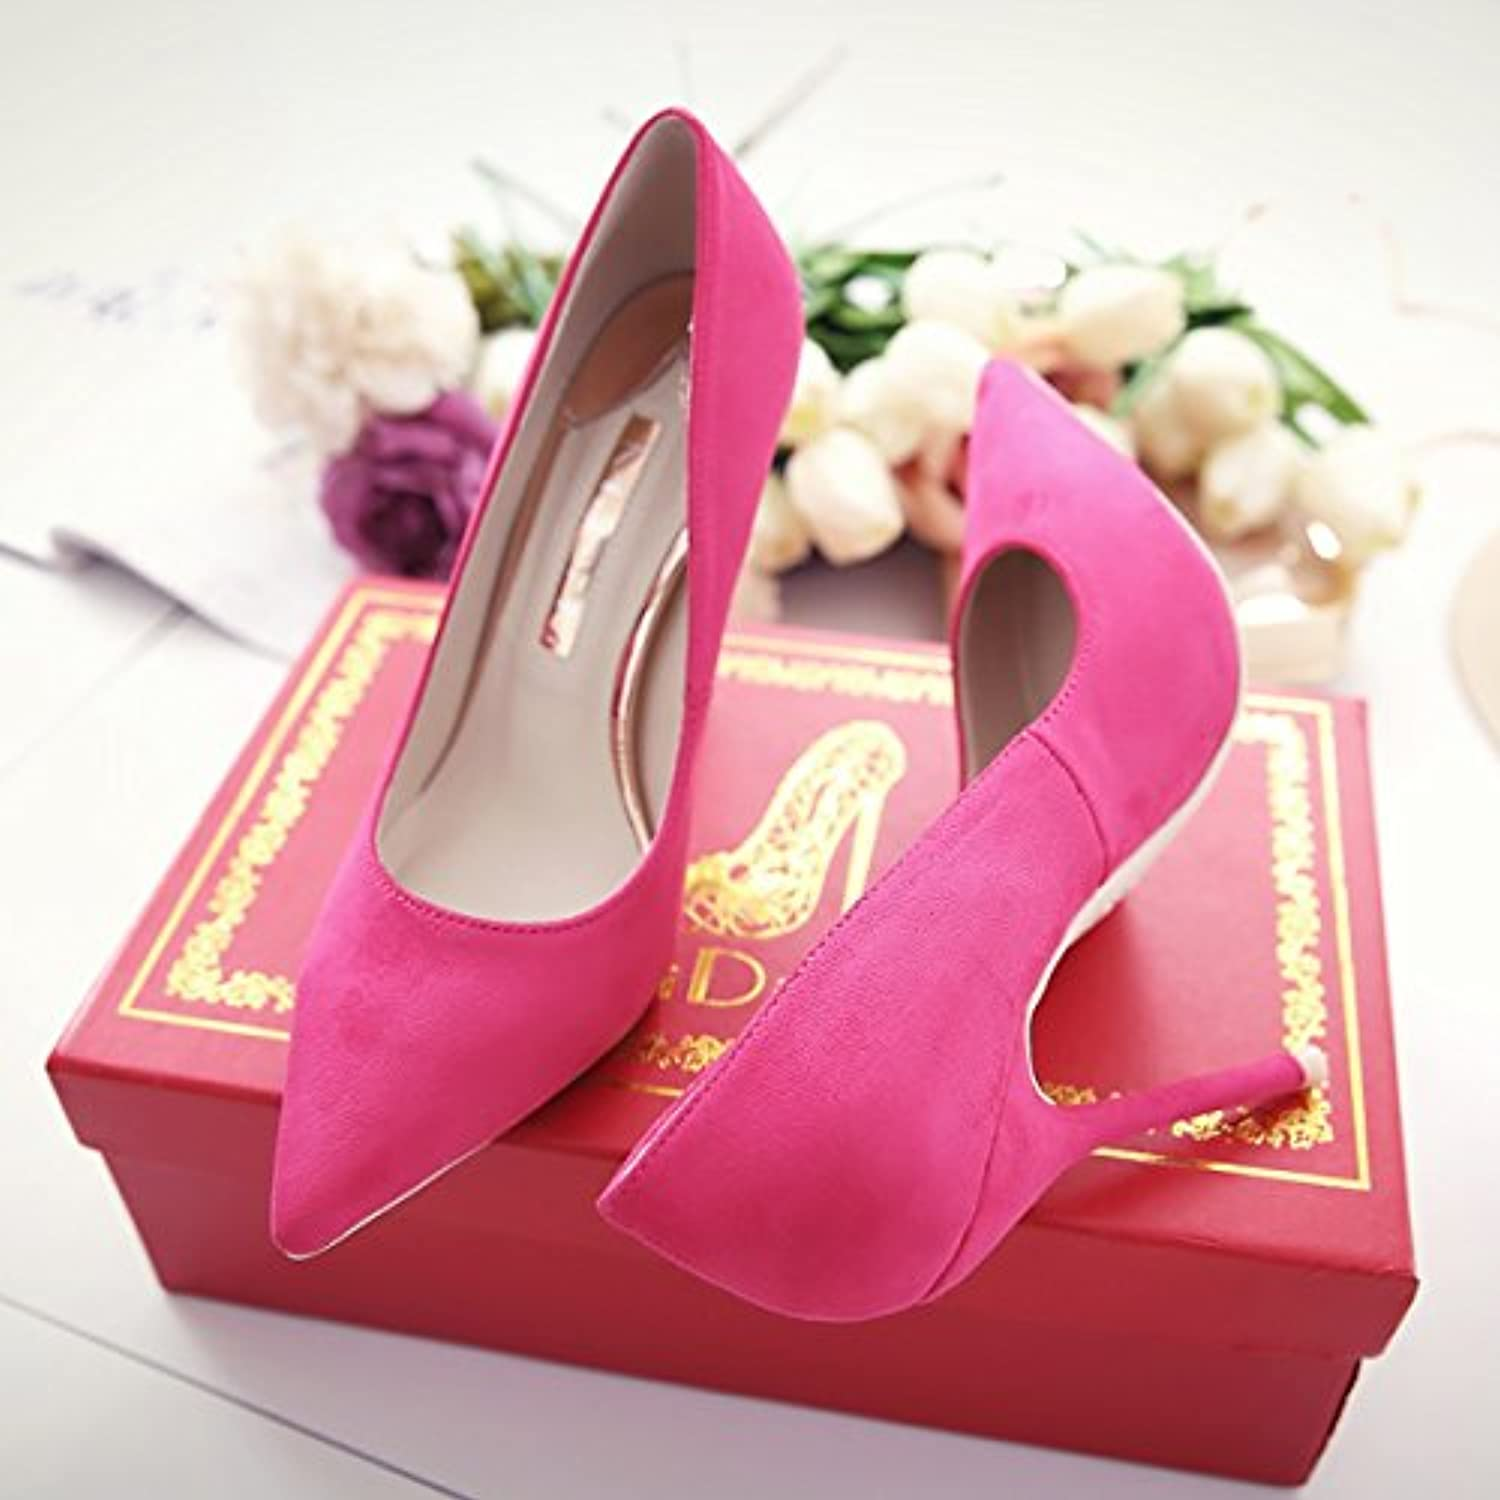 GAOLIM The Bare-colord Tip Light The High-Heel shoes 10Cm Thin Women With Single shoes Wedding shoes